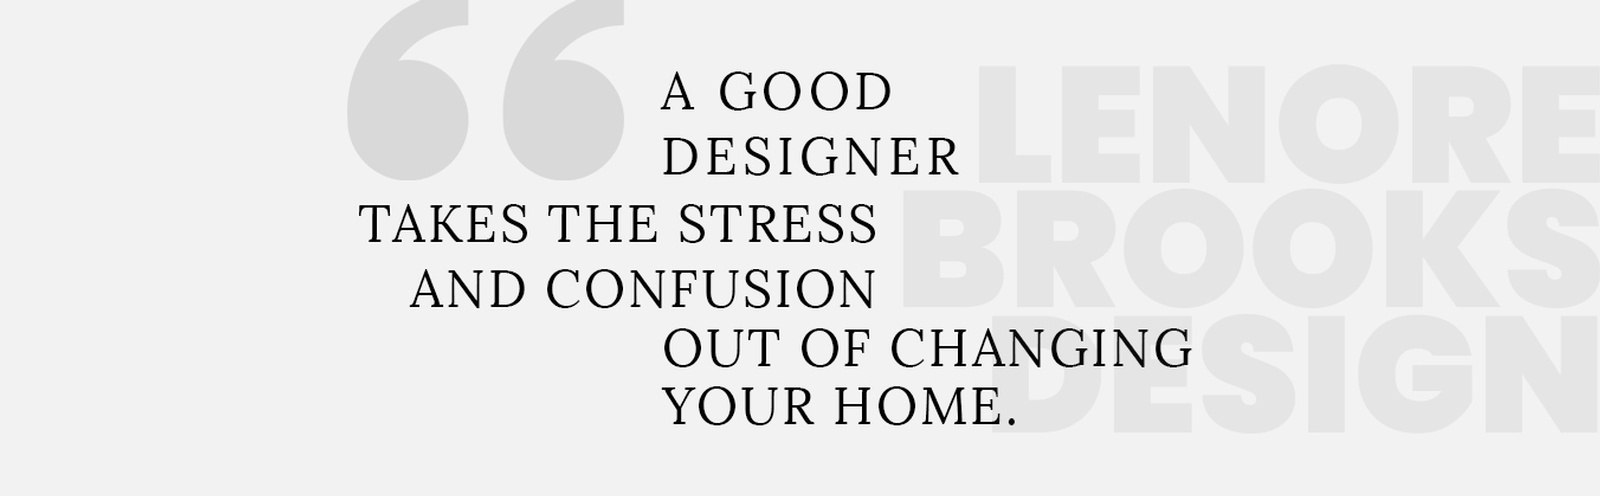 A Good Designer Takes the Stress and Confusion out of Changing your Home - Lenore Brooks Design